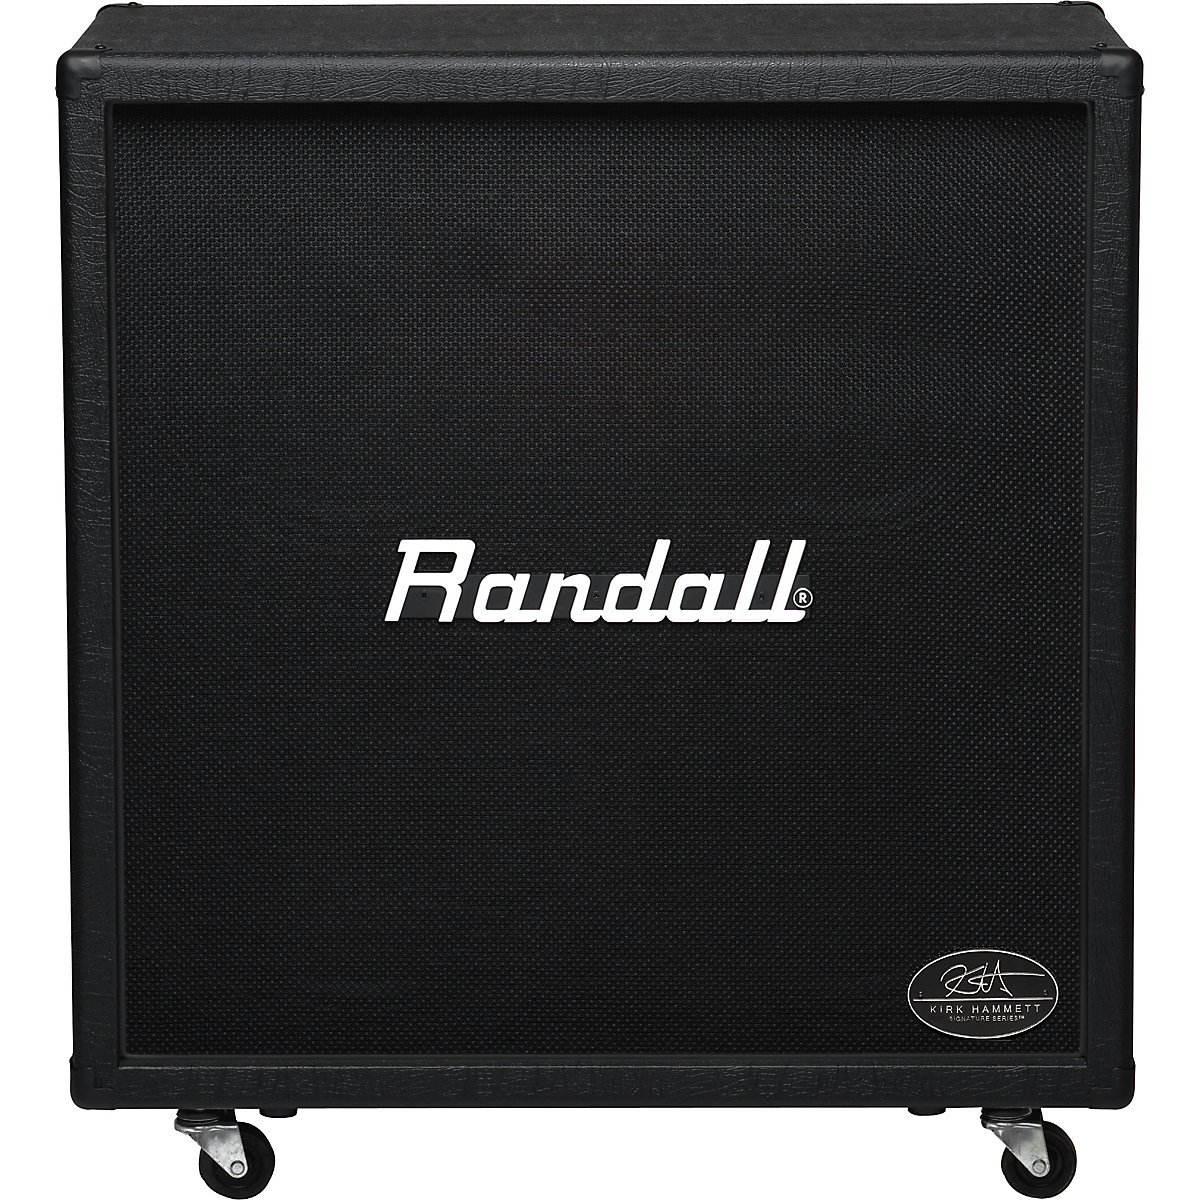 the Randall KH412 4x12 Kirk Hammett signature speaker cab